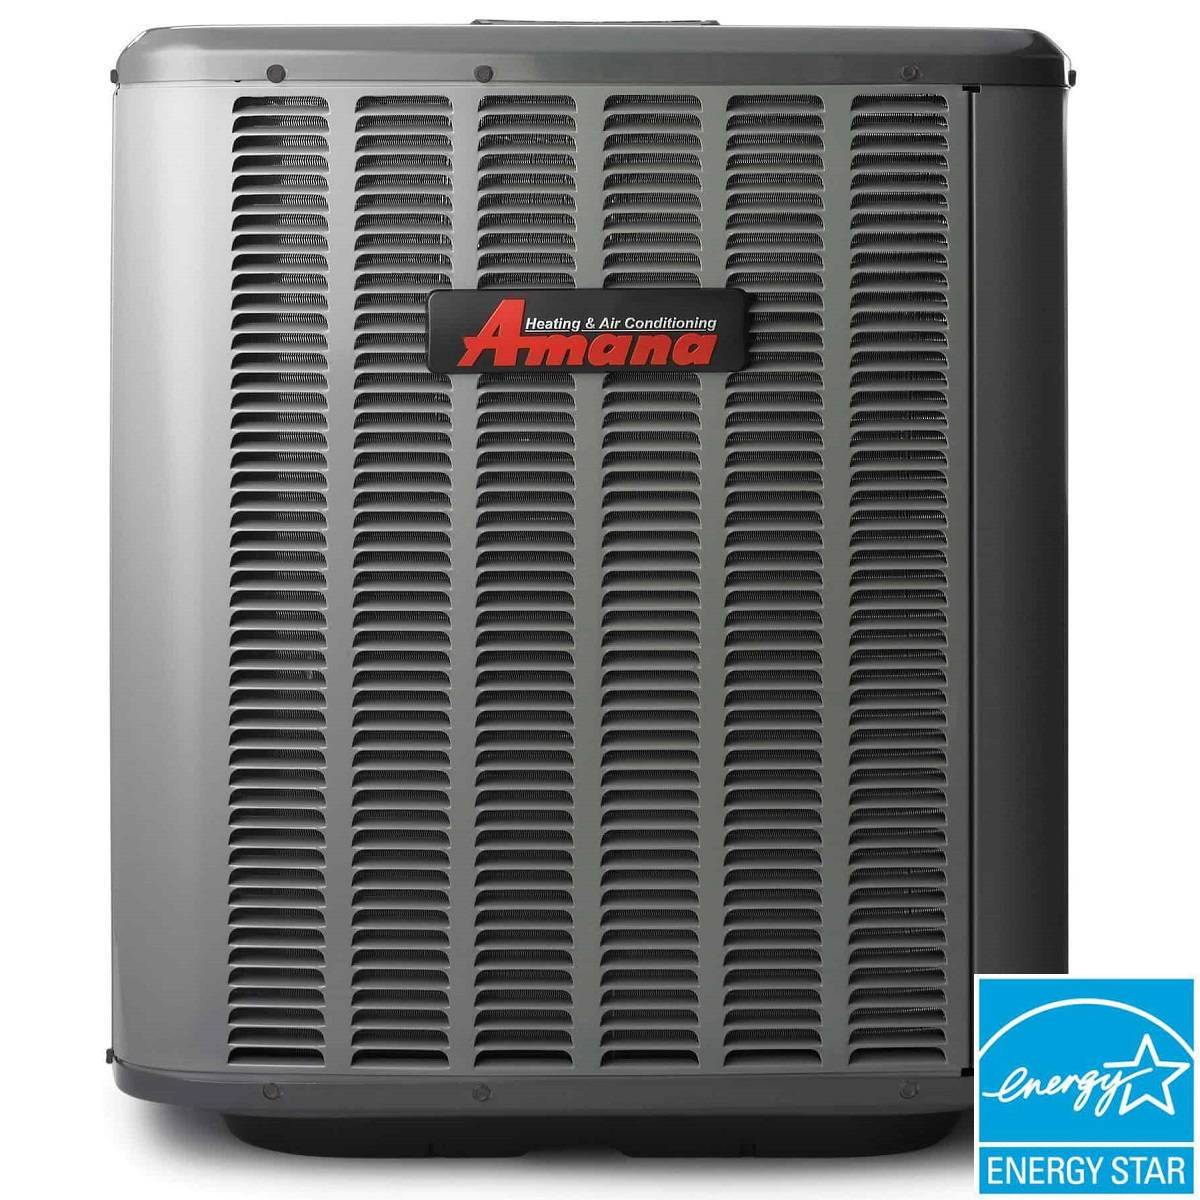 Asxc16 Amana Air Conditioner Up To 17 Seer Two Stage